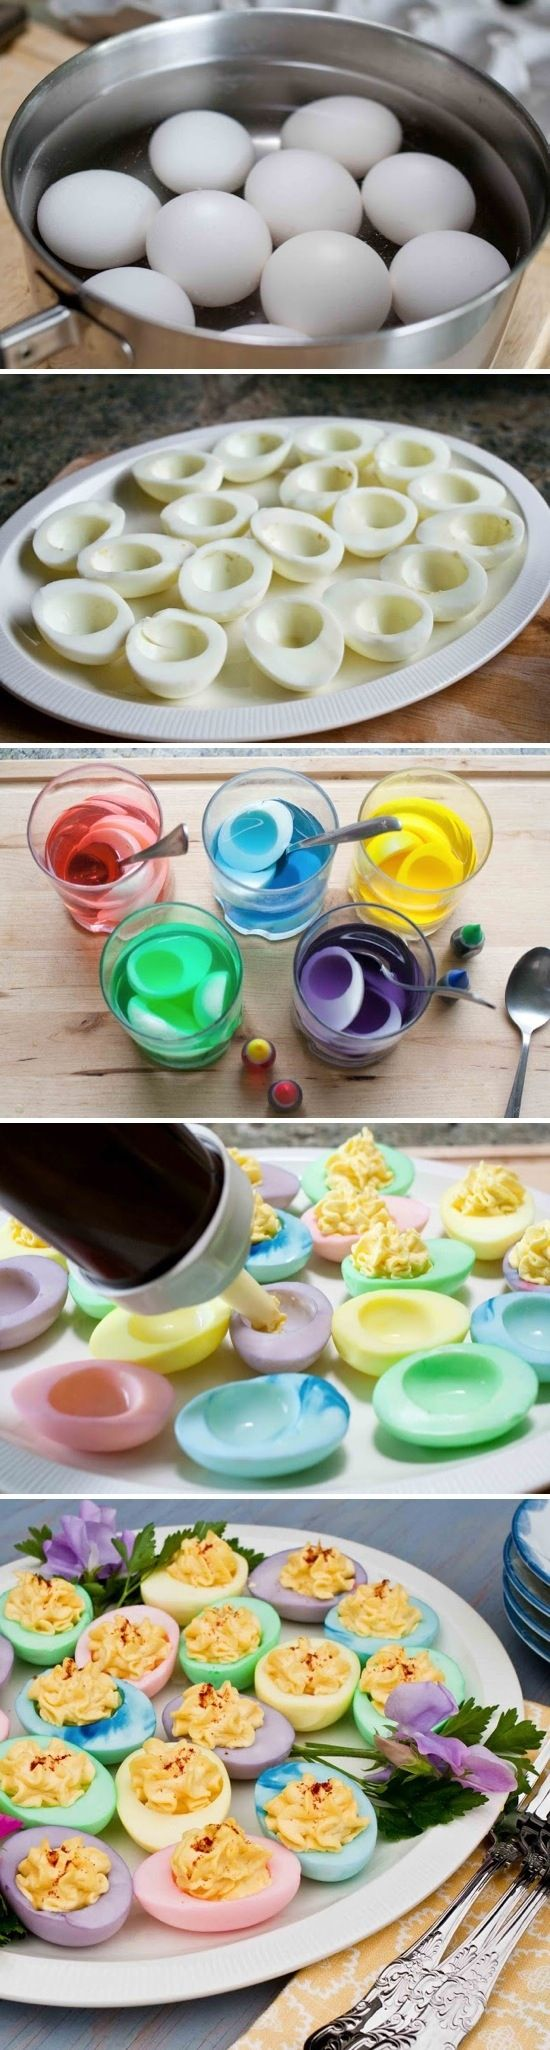 How to make brightly colored devilled eggs for Easter company.